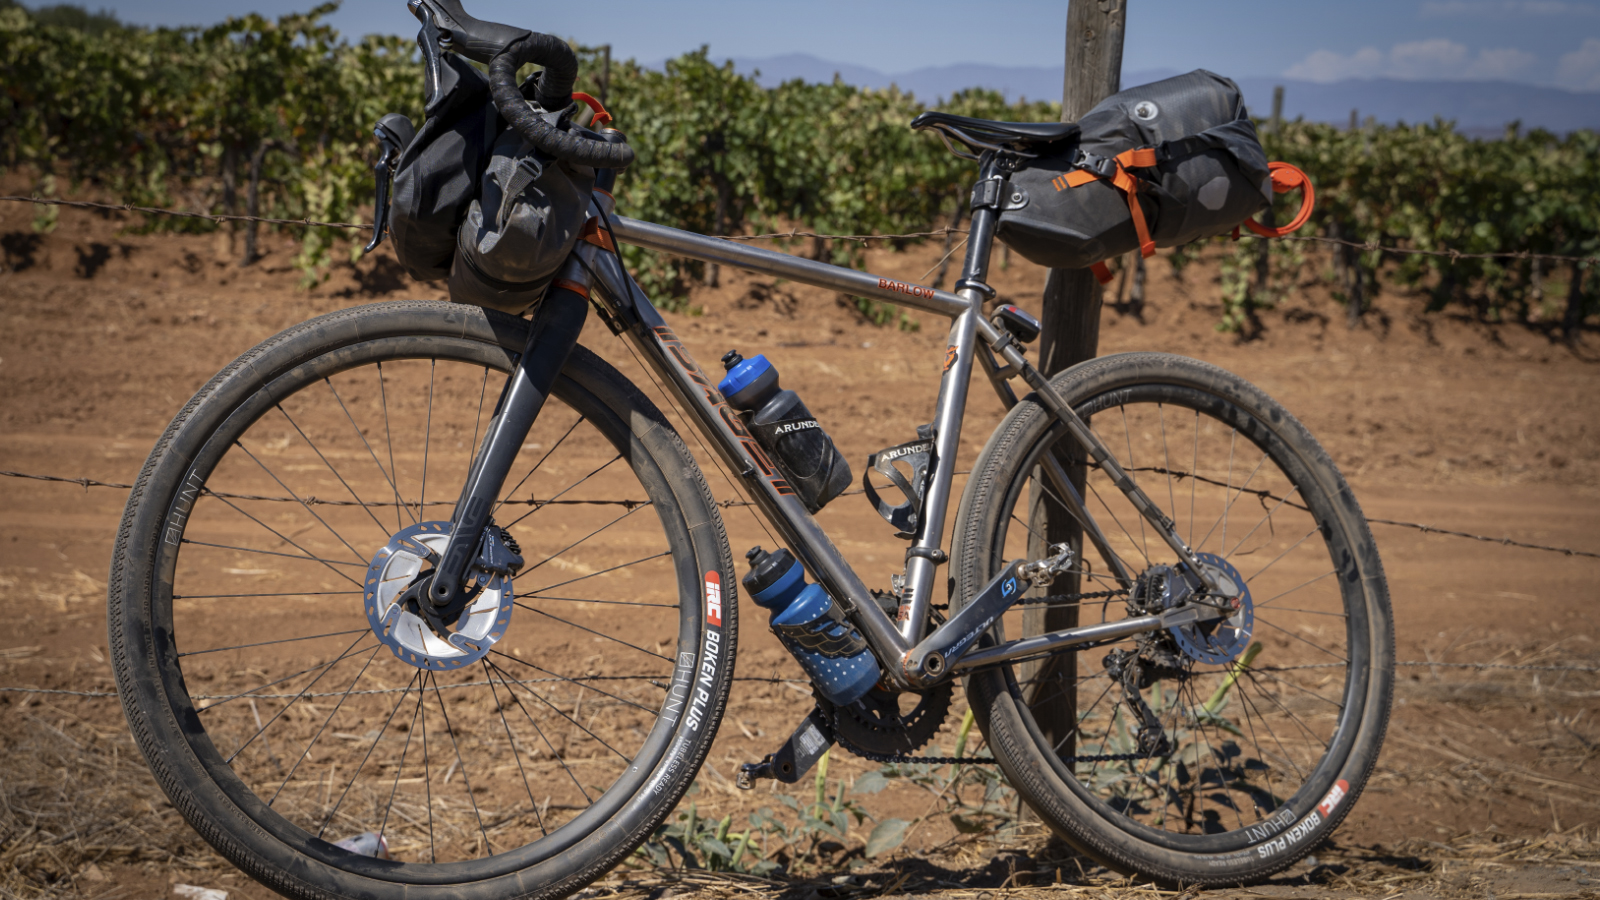 Gravel, bikepacking, and modern hardtails have pushed titanium back into the spotlight. Photo by Sean Burke